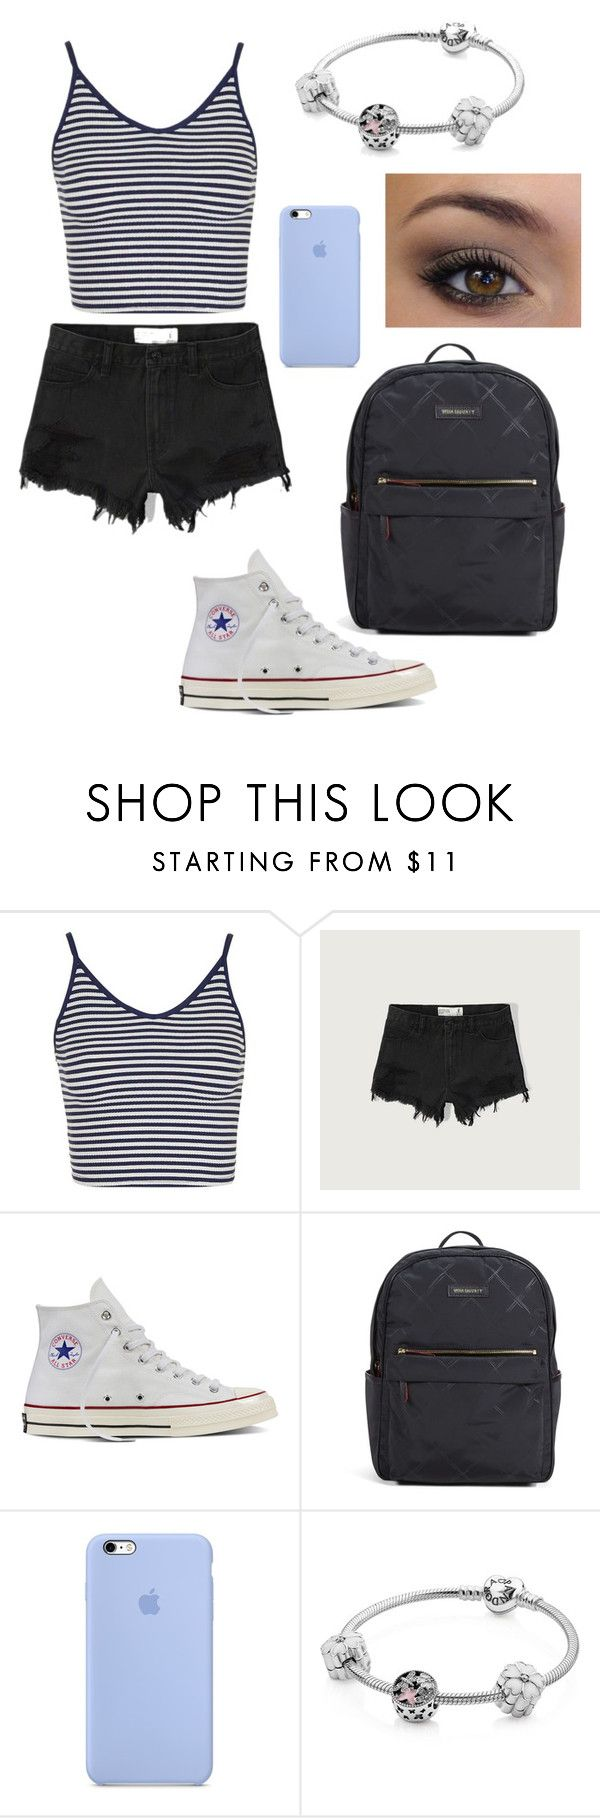 """""""cute school outfit"""" by fashionblogger2122 on Polyvore featuring Topshop, Abercrombie & Fitch, Converse, Vera Bradley and Pandora"""